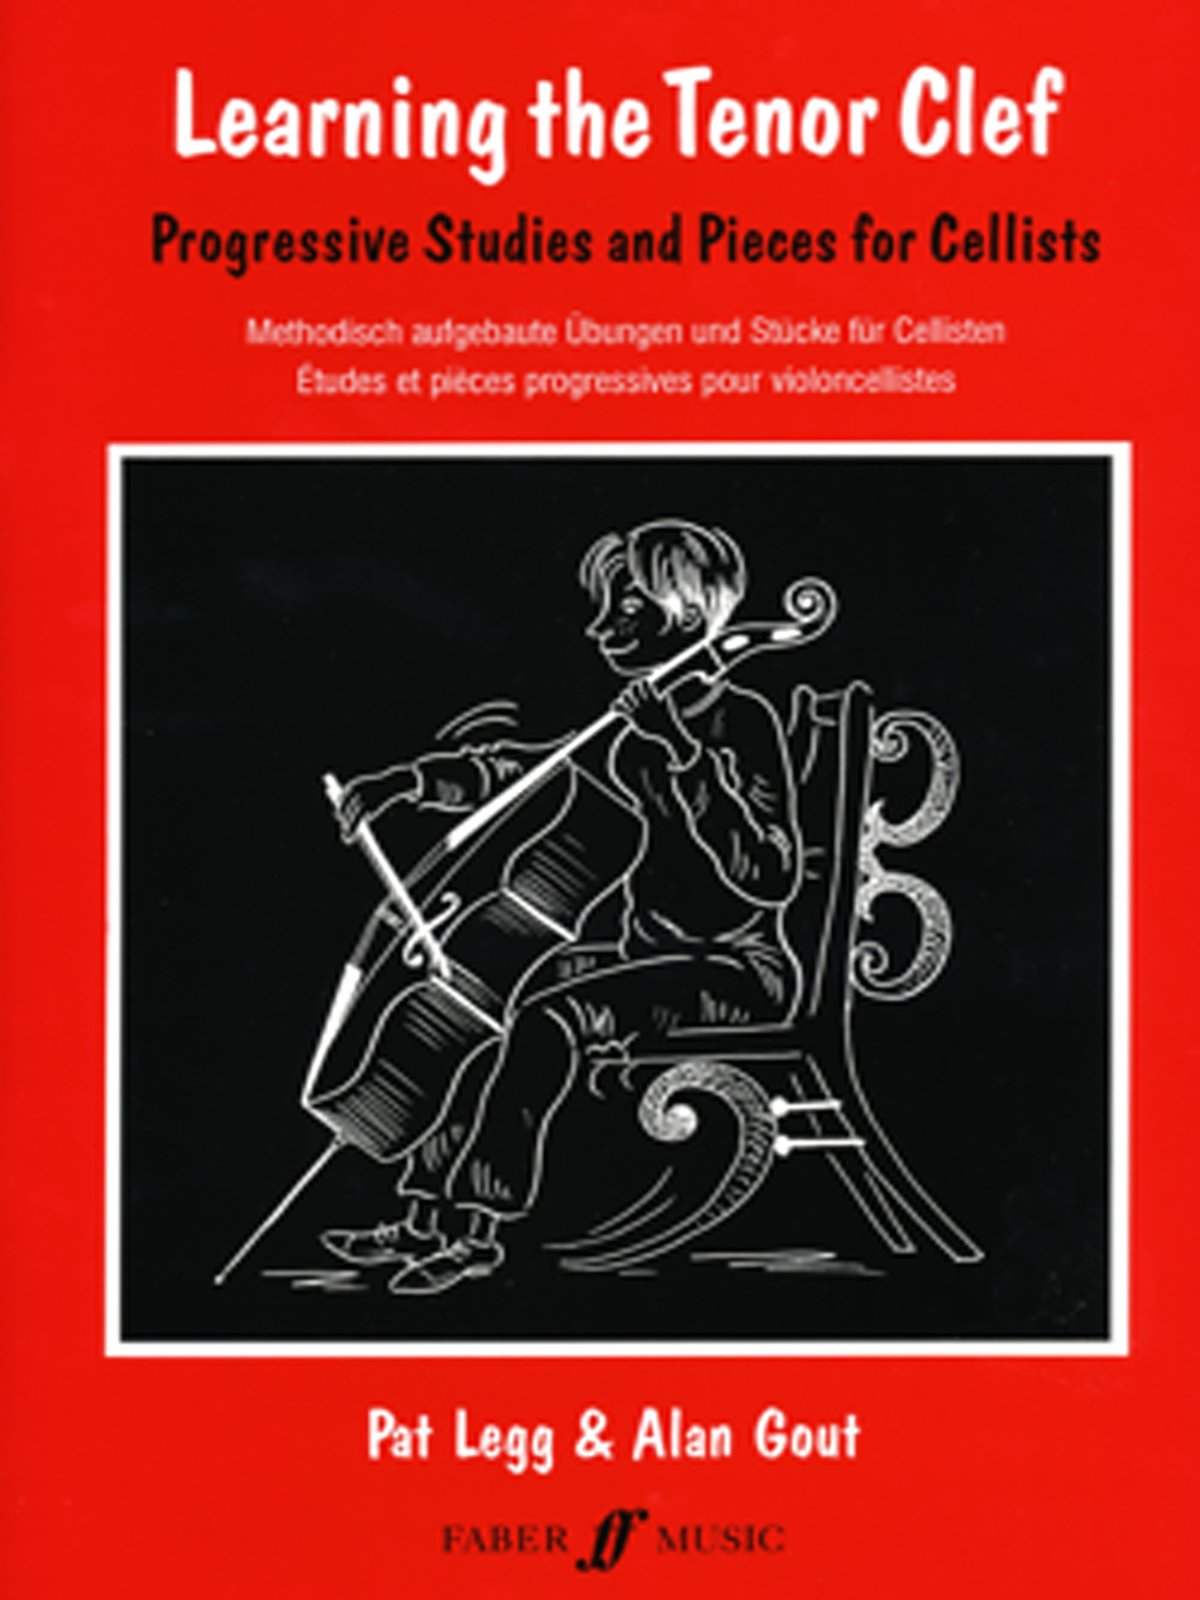 Learning the Tenor Clef (Cello): Progressive Studies and Pieces for Cello Paperback – Jan 1 2003 Patt Legg Alan Gout Alfred Publishing Co 0571519172